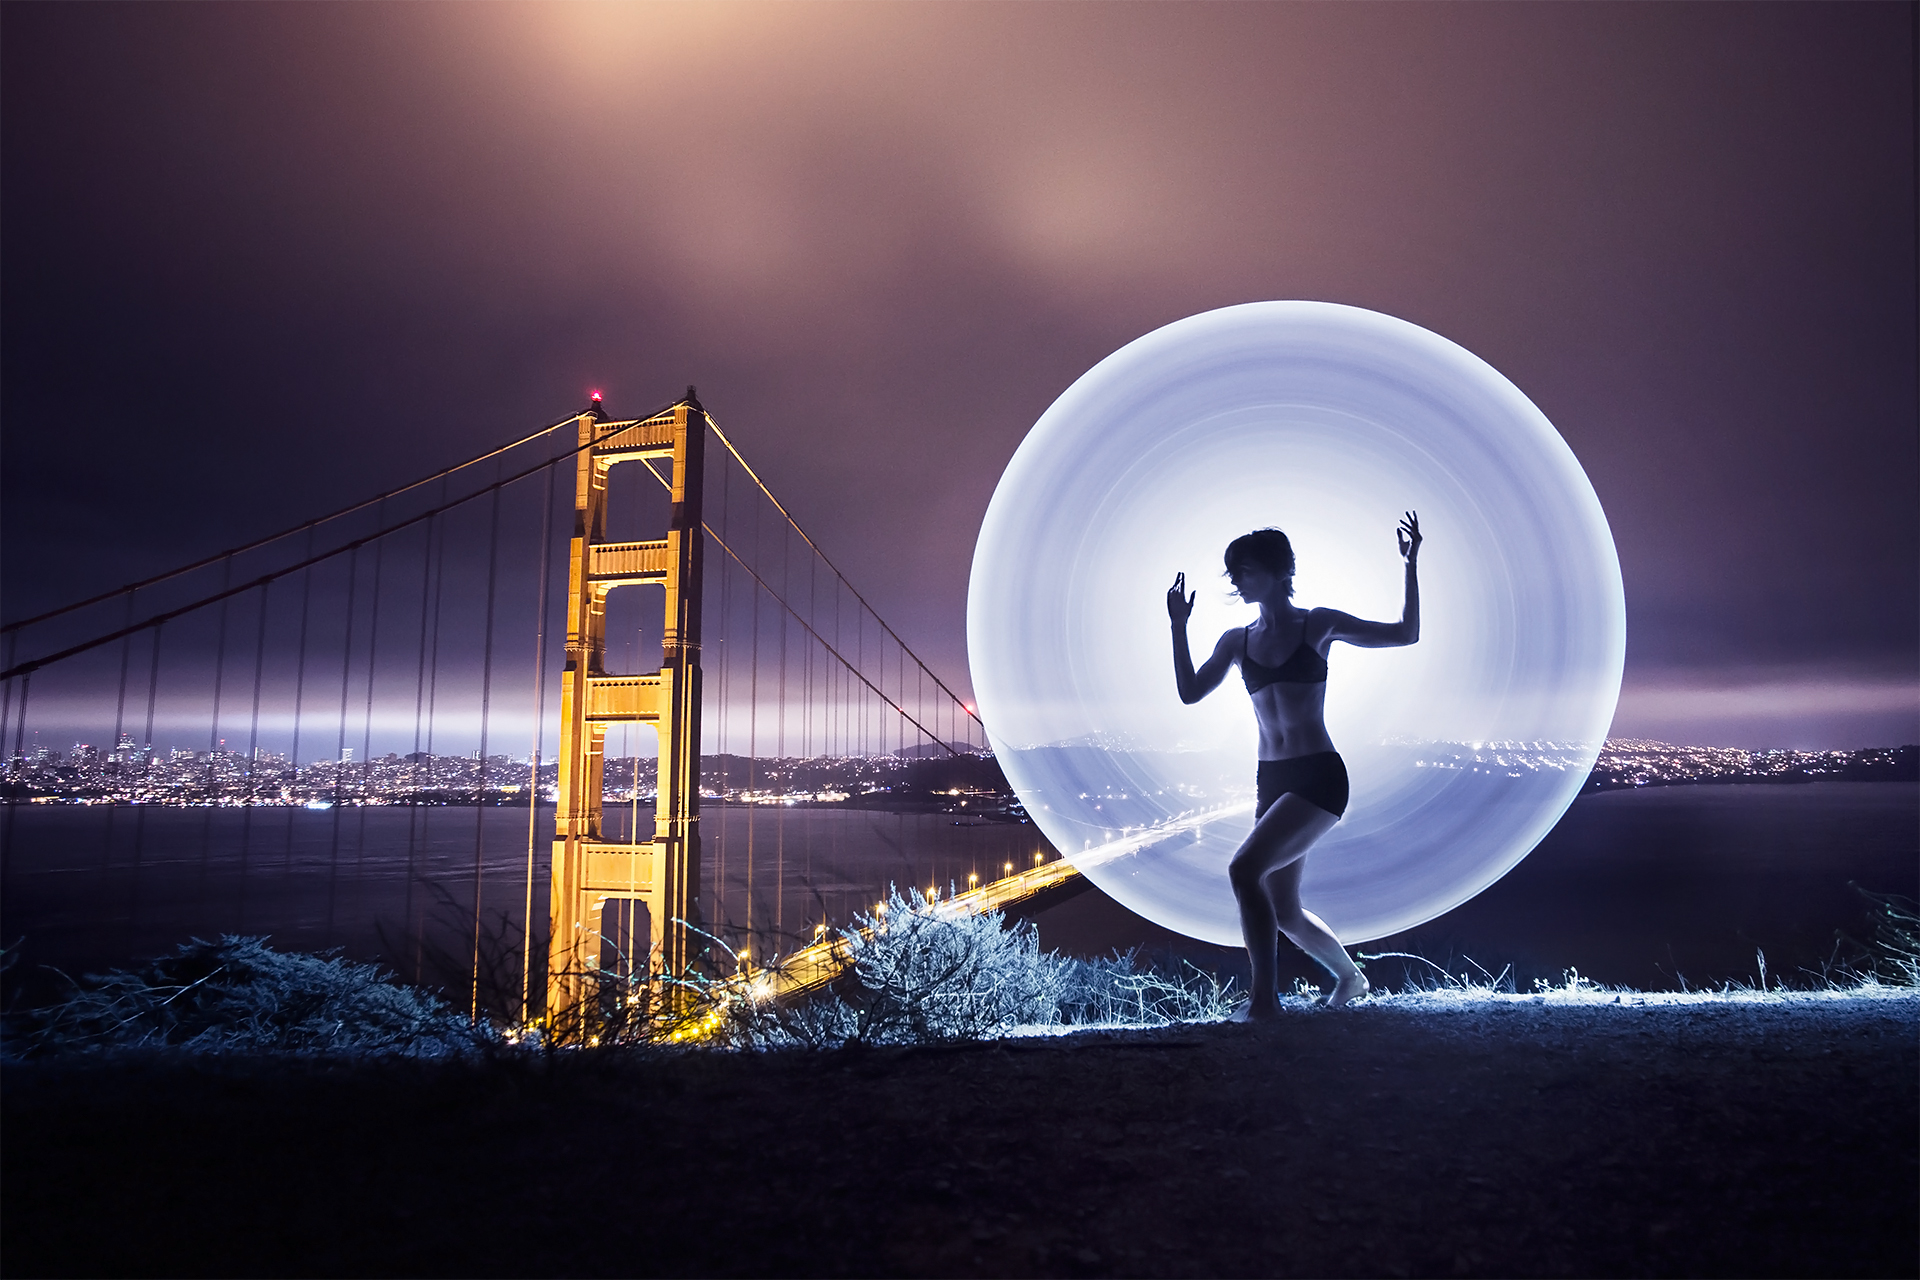 Light Painting Wedding Photography: Signs Of Light By Eric Pare